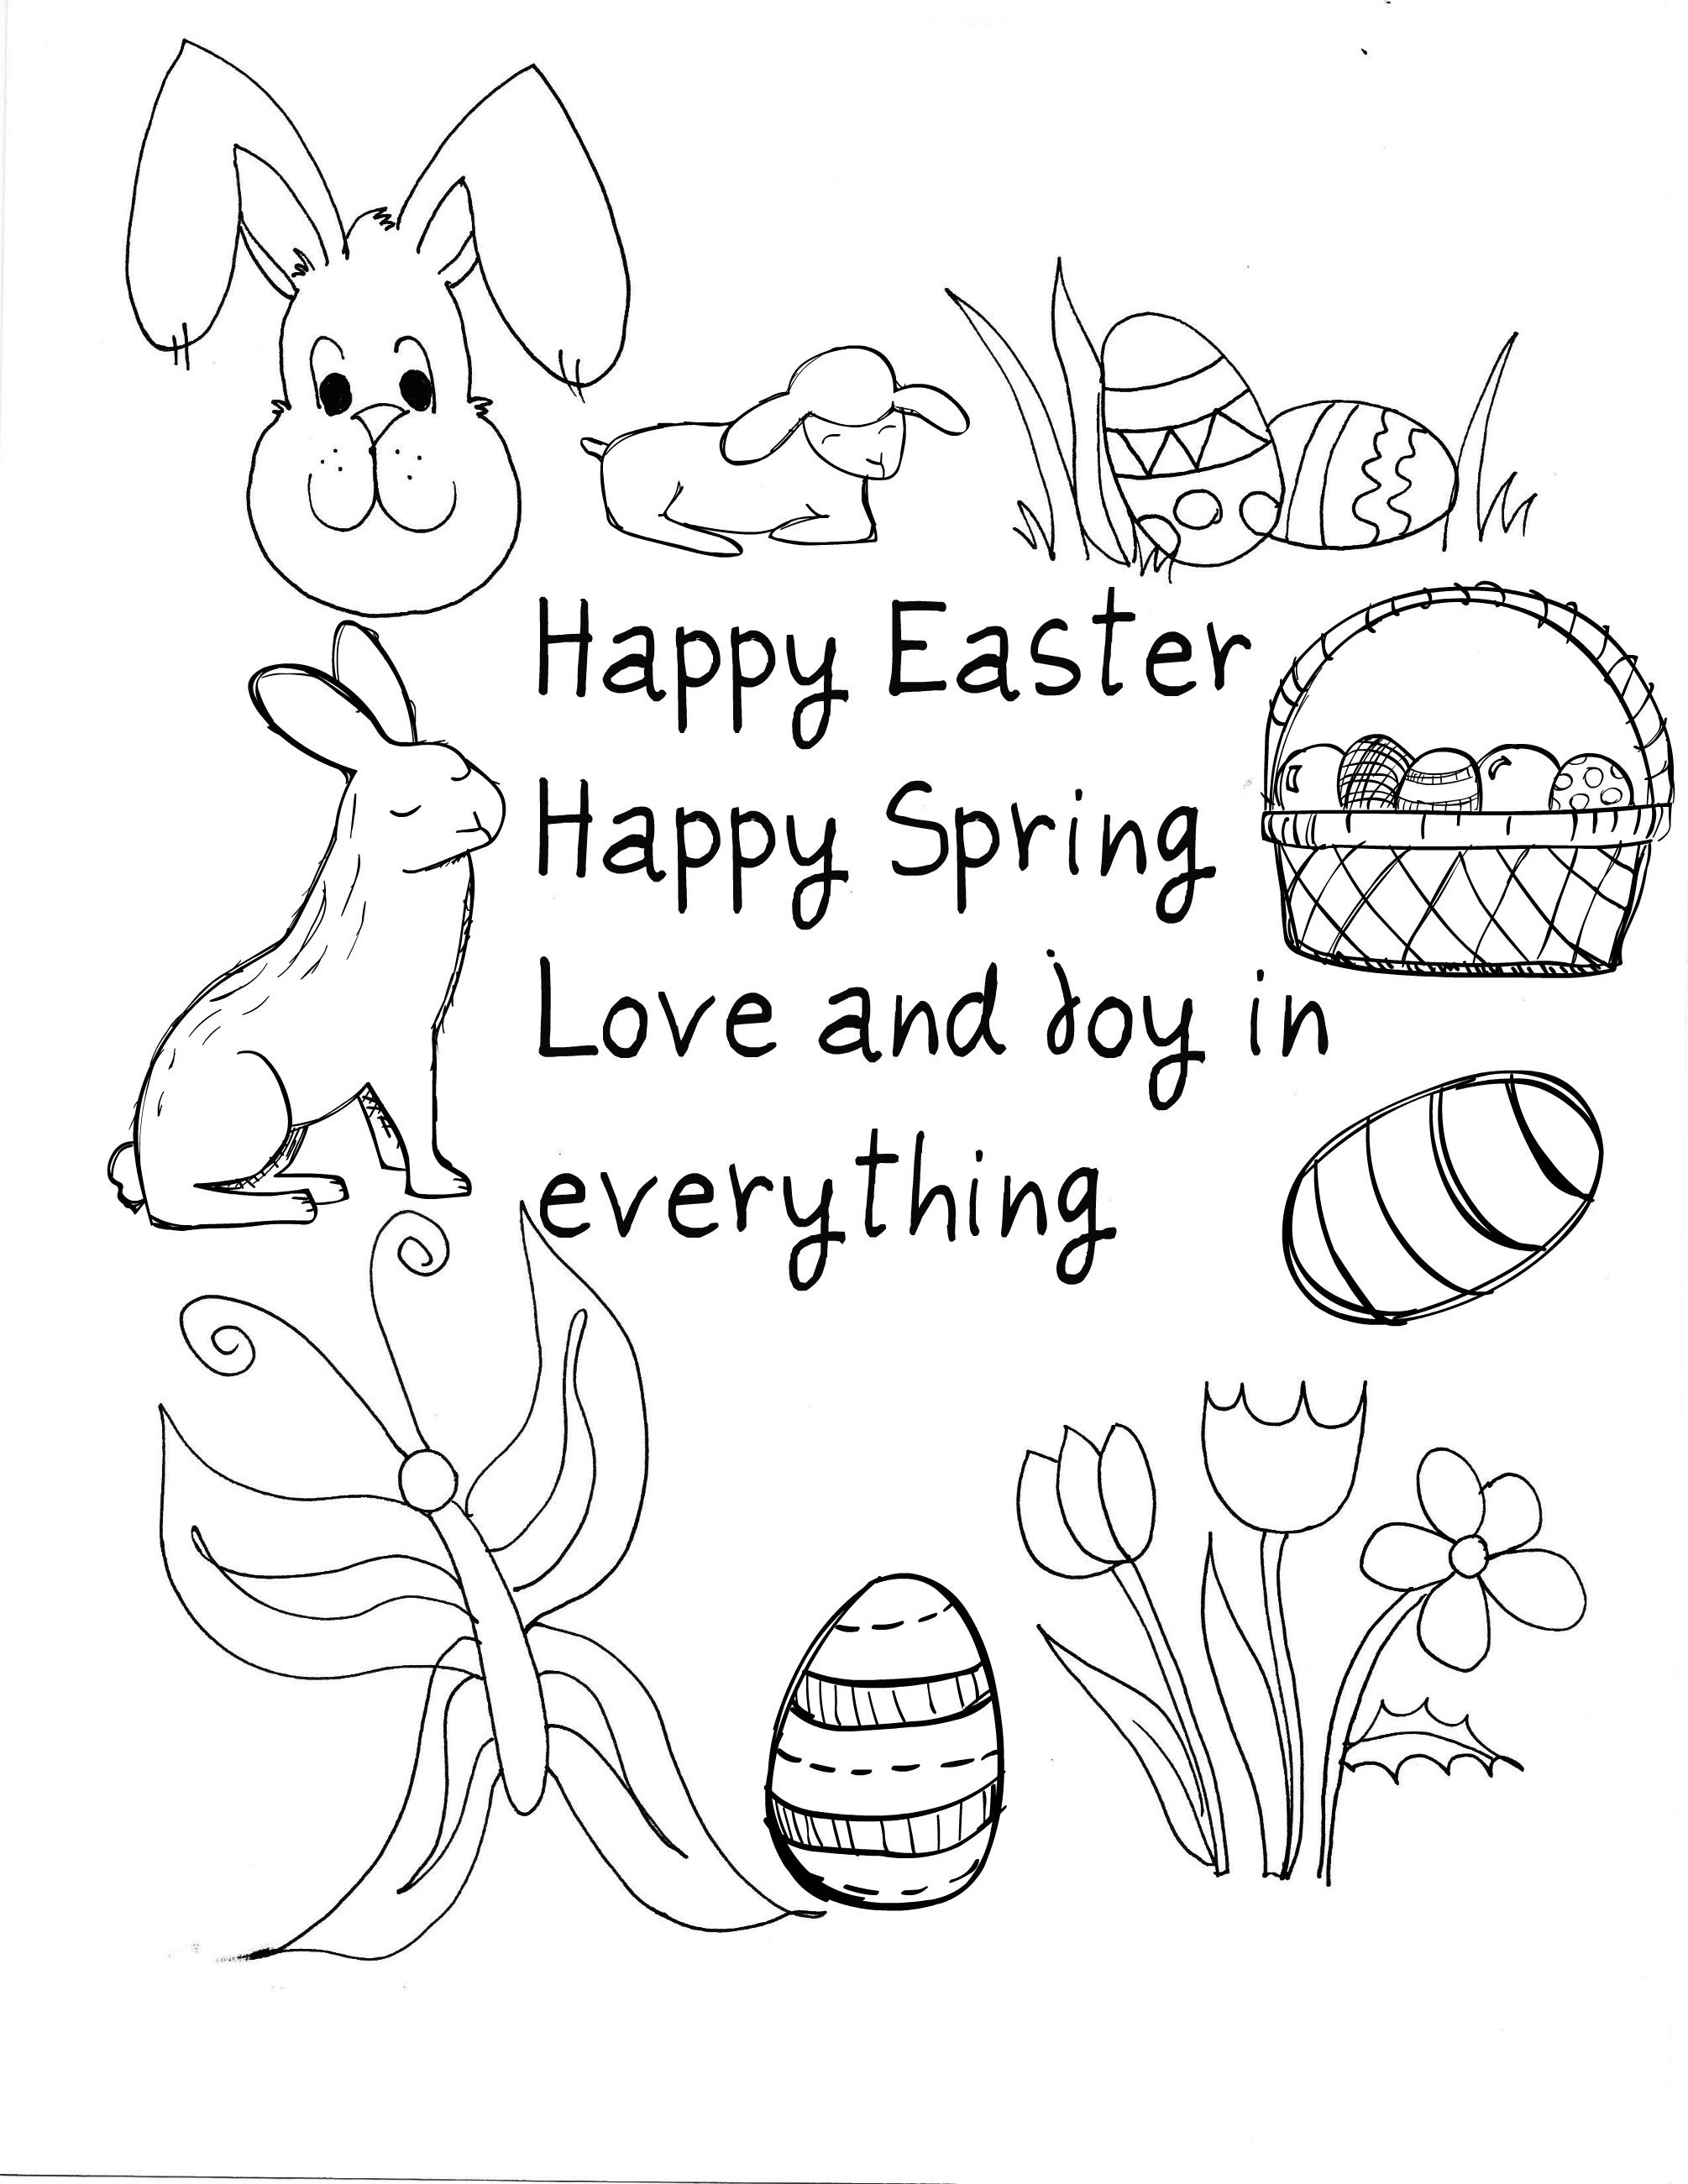 38 Happy Easter Coloring Page Happy Easter Wishes Free Coloring Download Of Easter Coloring Printable Easter Coloring Pages Coloring Gallery